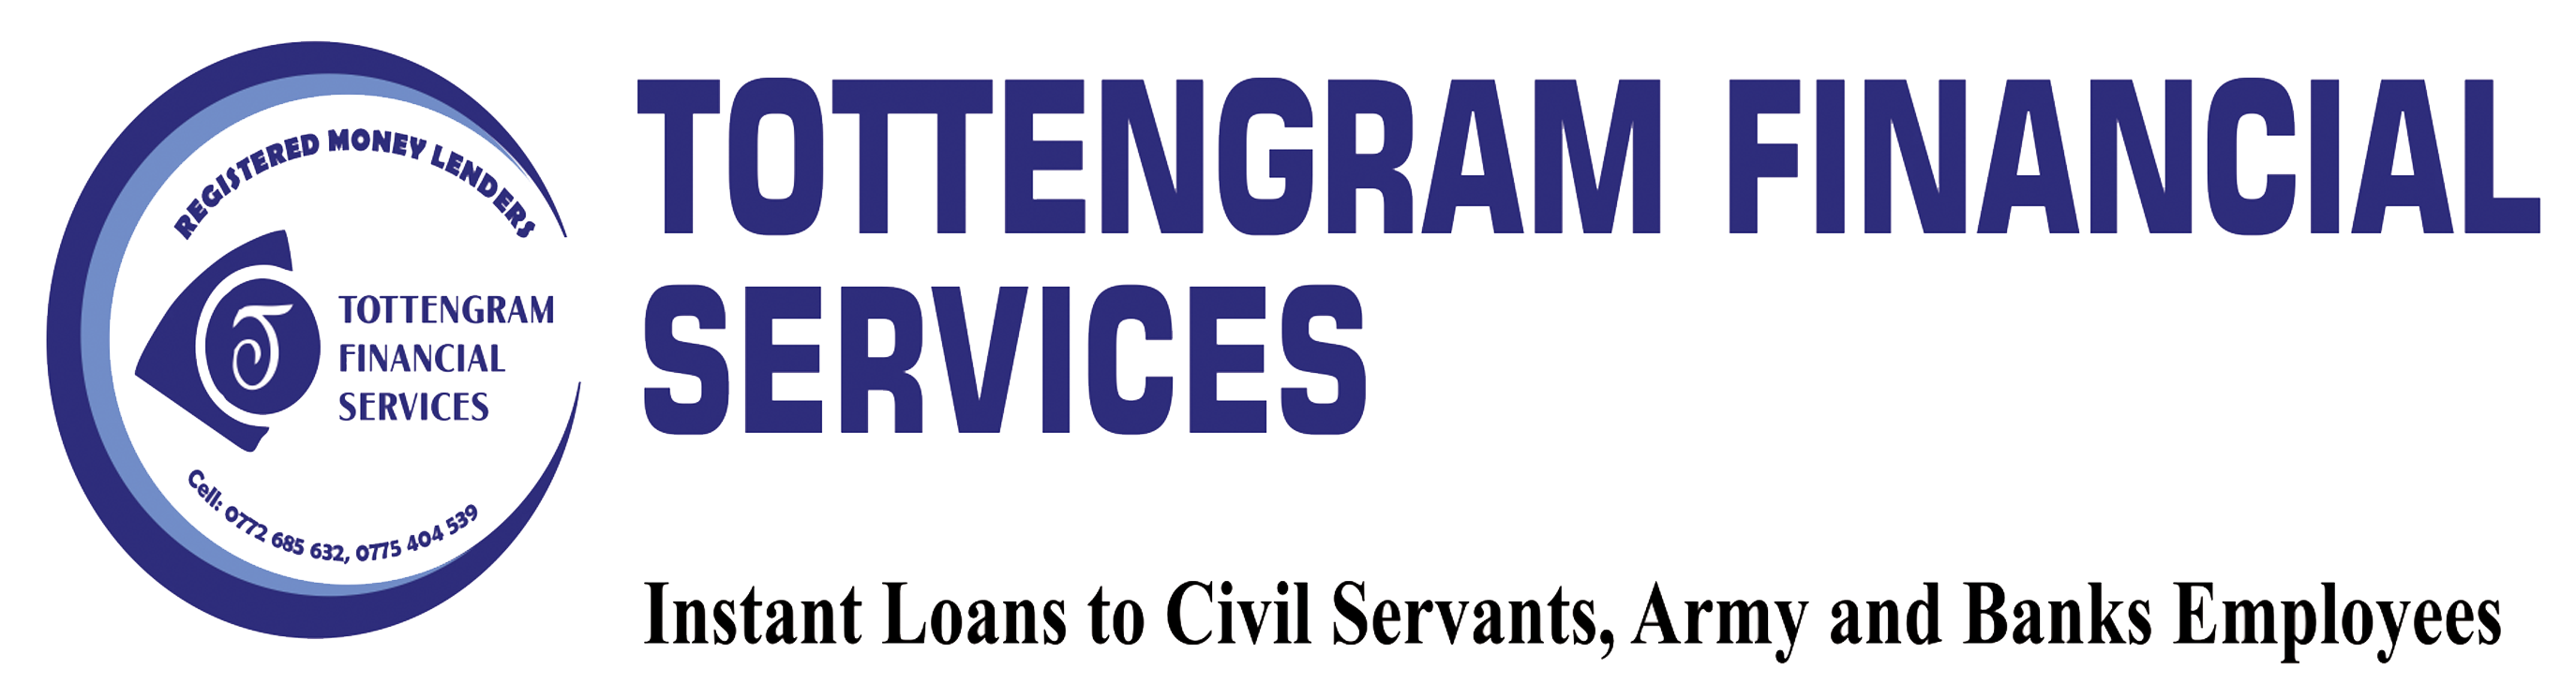 TOTTENGRAM INVESTMENTS